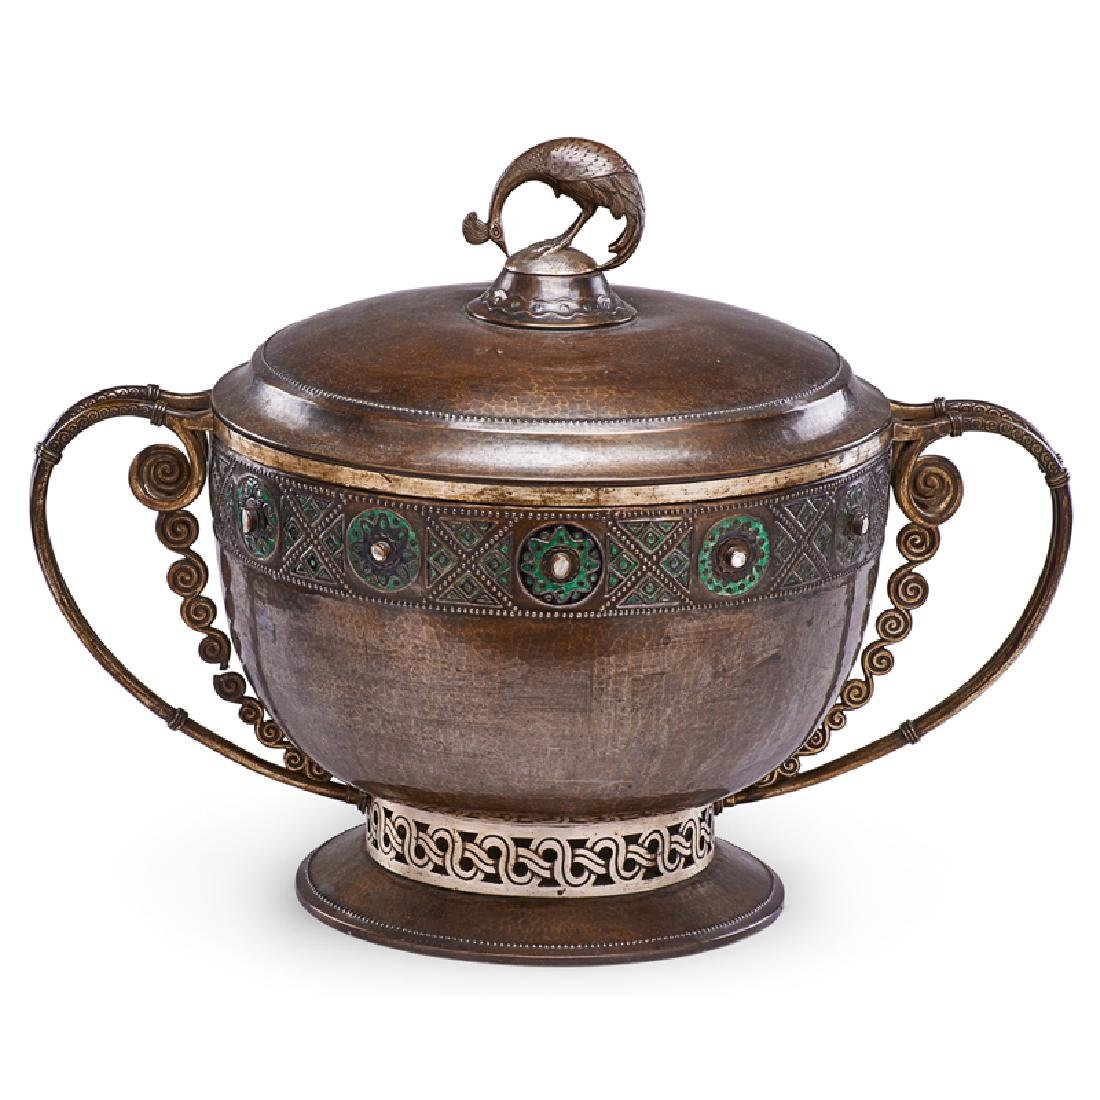 EUGEN EHRENBOCK Enameled copper vessel w/ peacock - 3